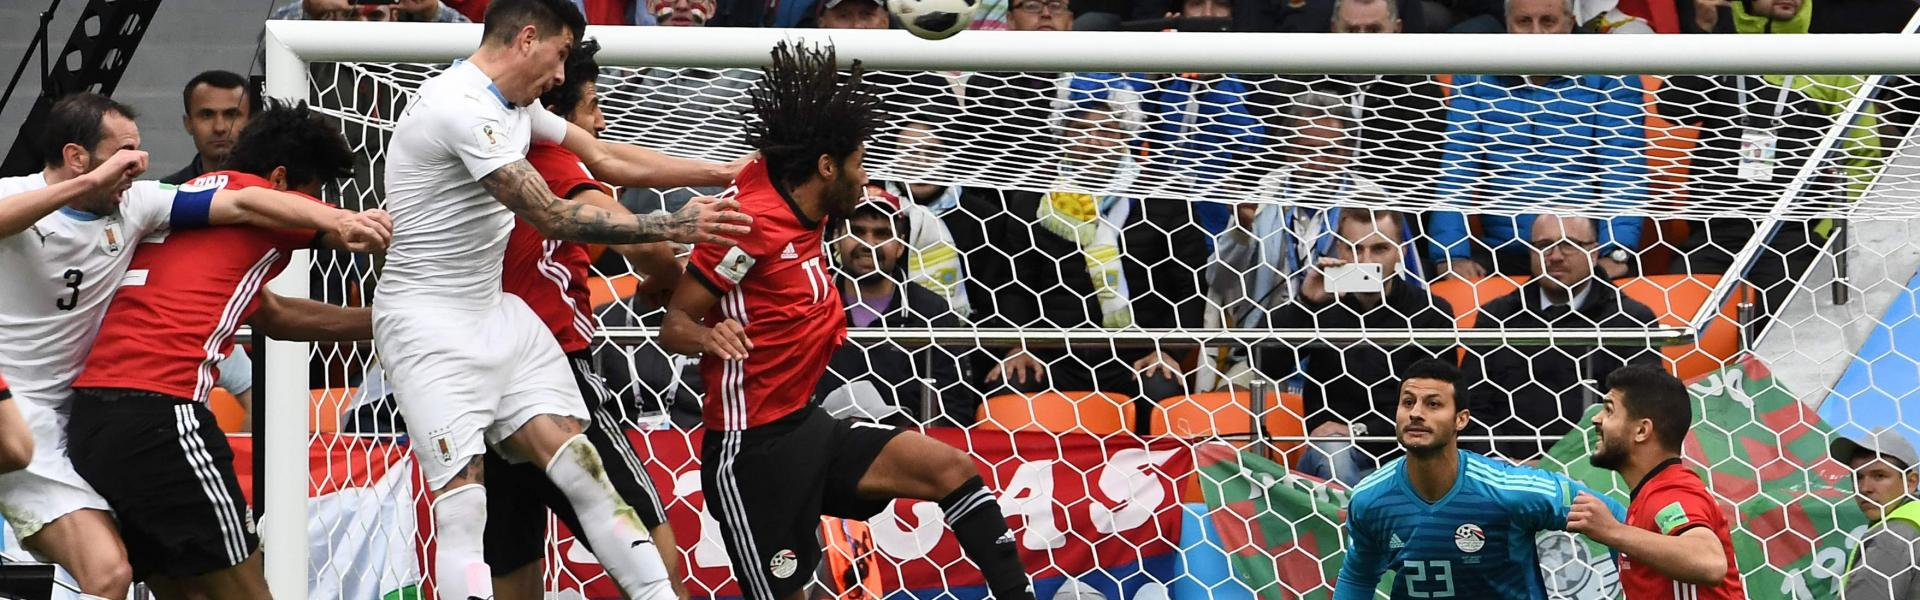 Uruguay's defender Jose Gimenez (3L) heads the ball to score the opening goal during the Russia 2018 World Cup Group A football match between Egypt and Uruguay at the Ekaterinburg Arena in Ekaterinburg on June 15, 2018.